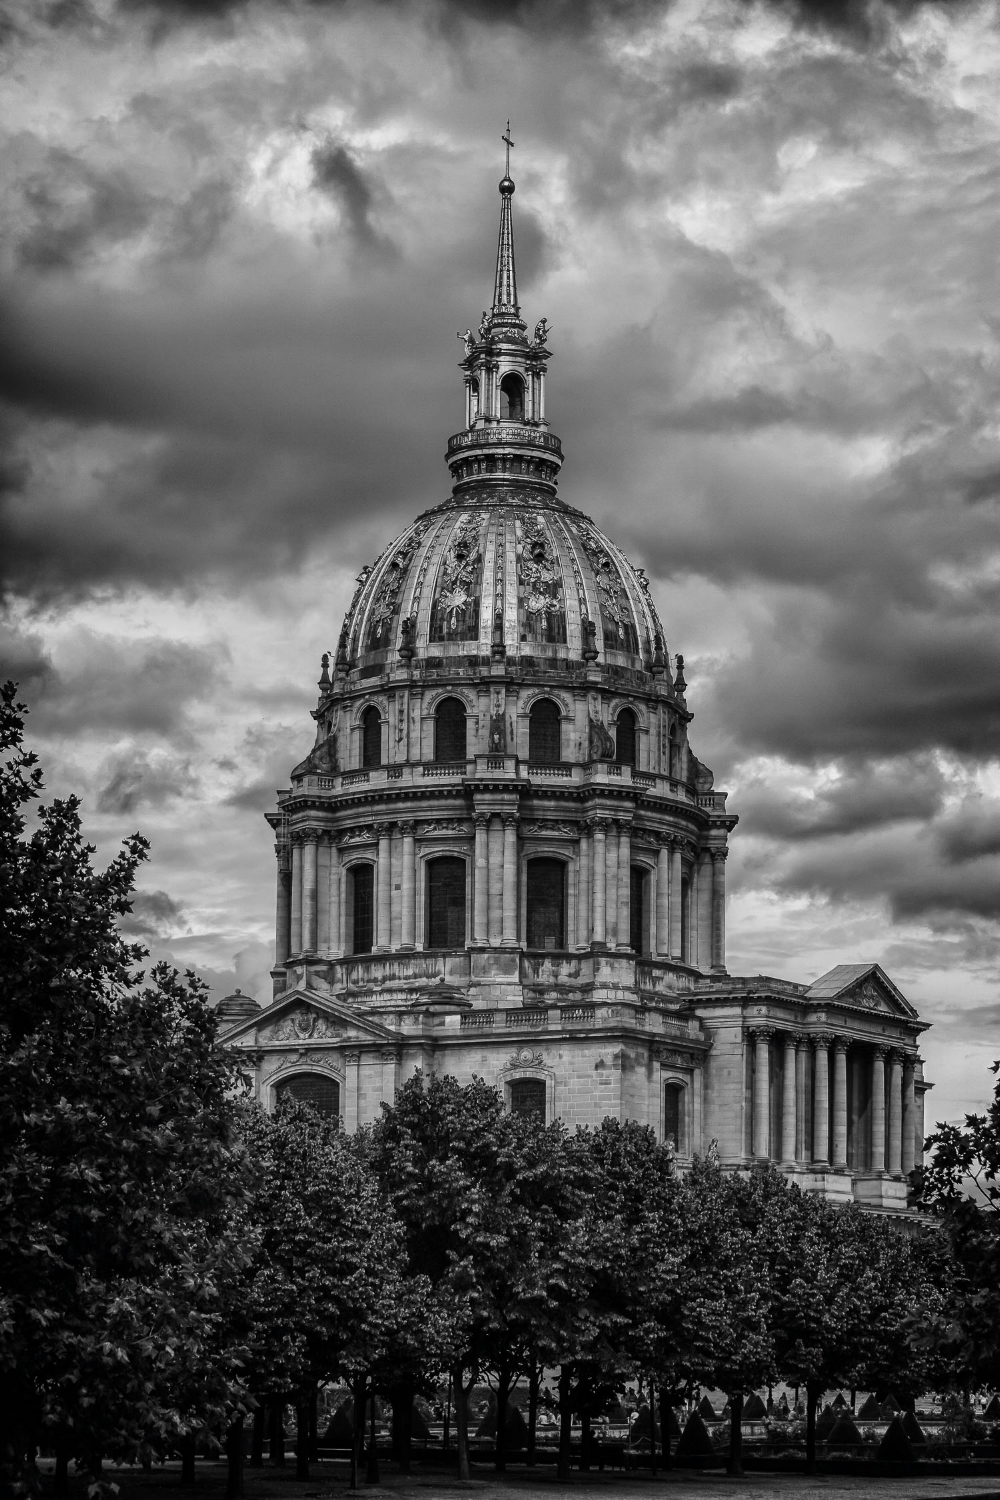 An exterior black and white rendering of Les Invalides pictured against a dramatic sky in Paris, France.